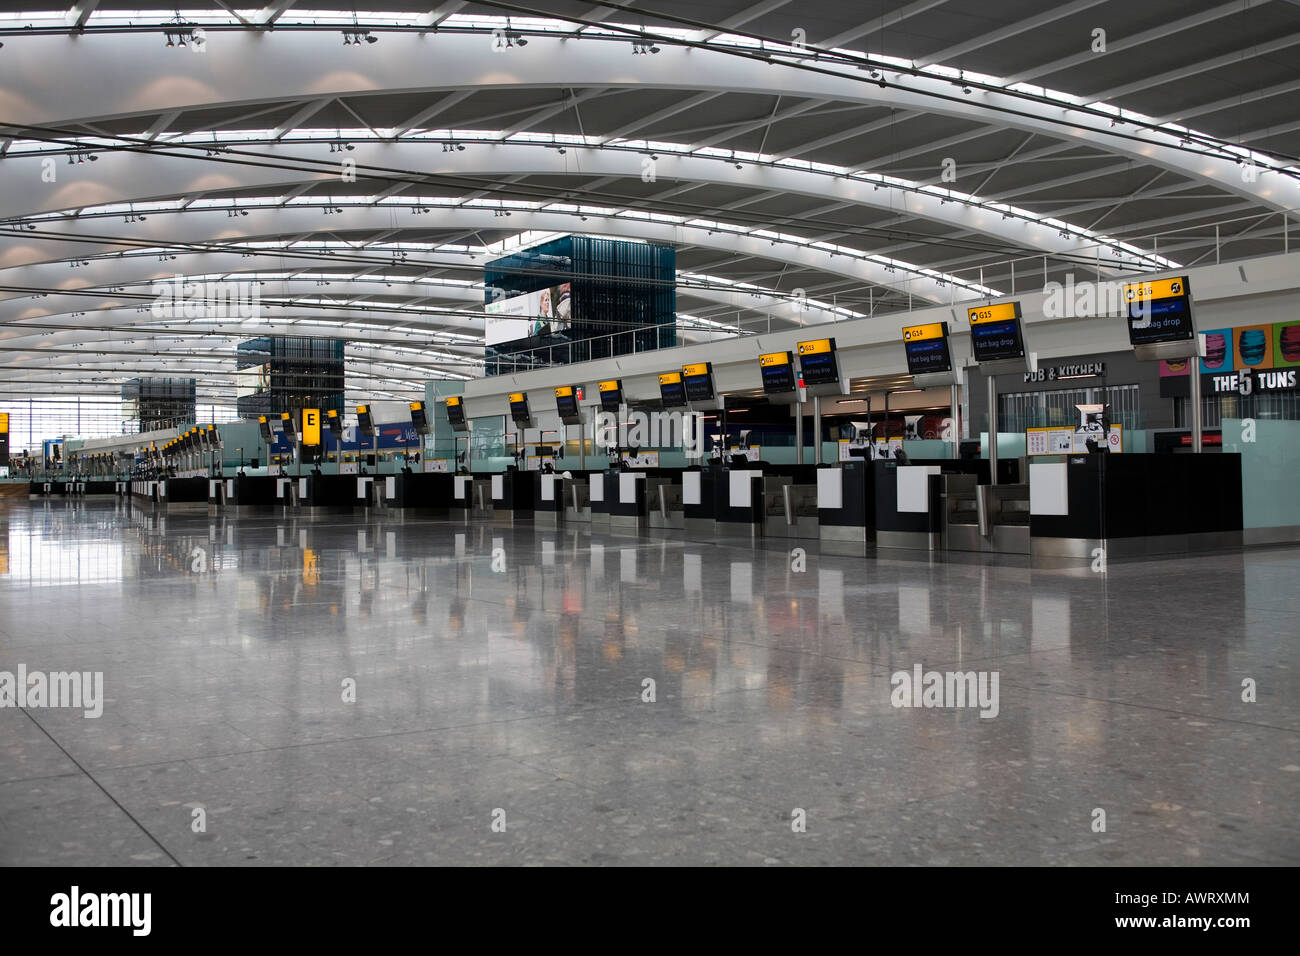 British Airways fast bag Drop Check in desks at London Heathrow Airport Terminal 5 - Stock Image